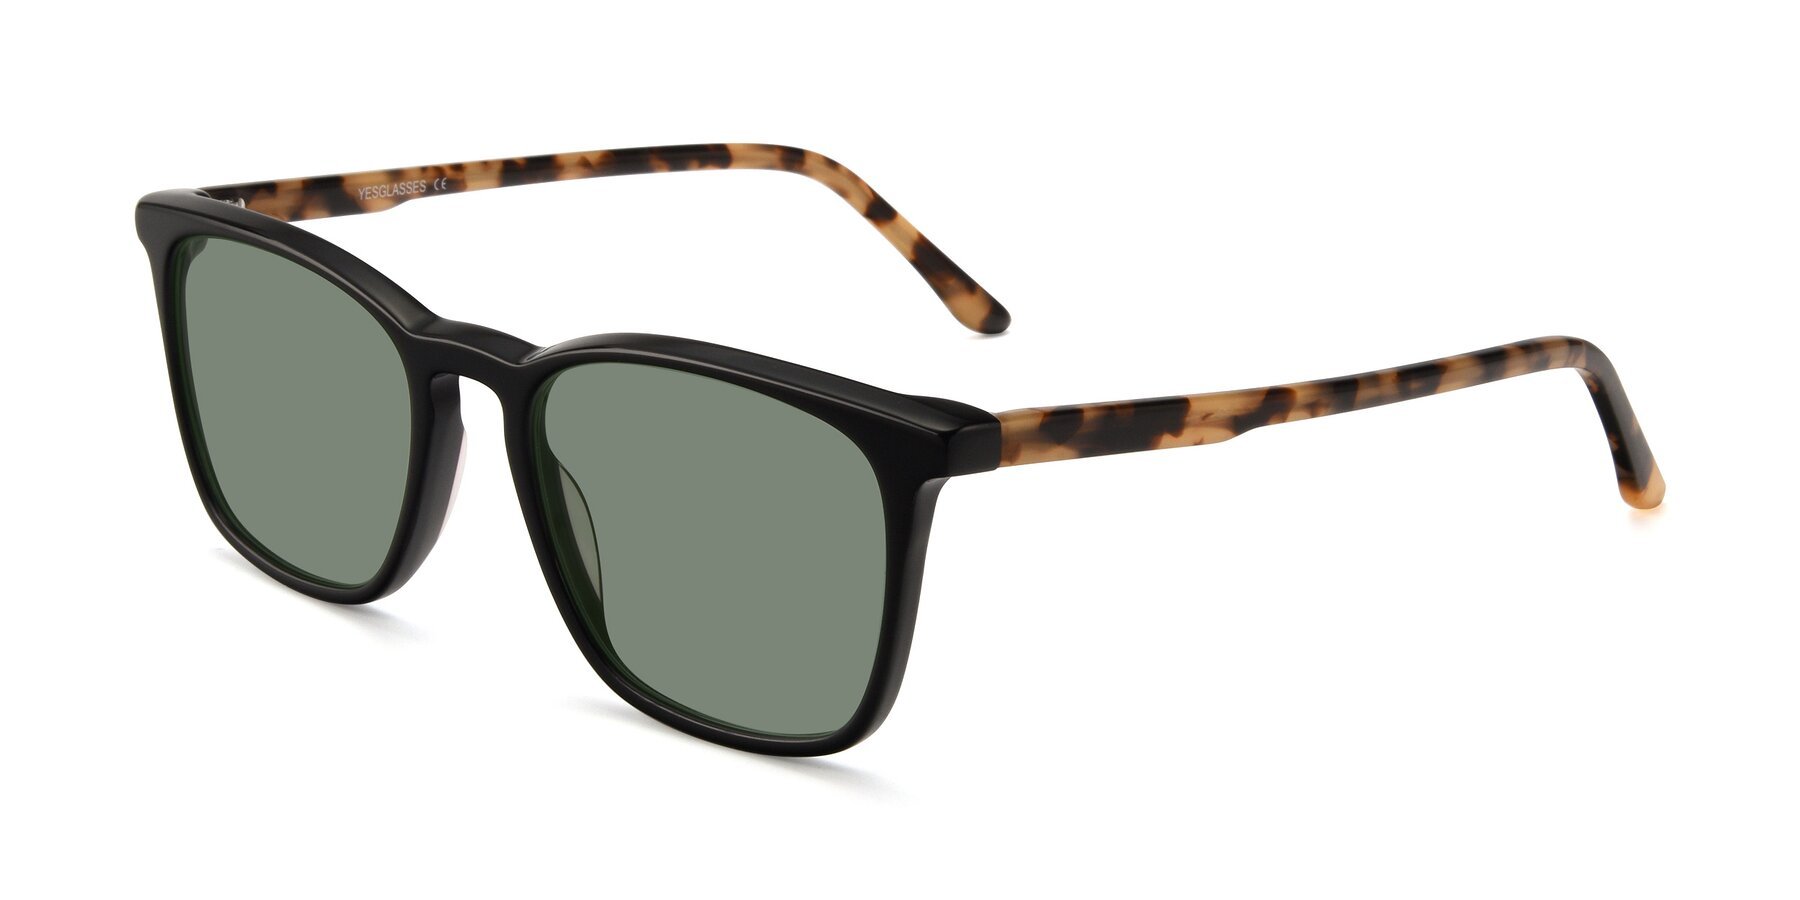 Angle of Vigor in Black-Tortoise with Medium Green Tinted Lenses